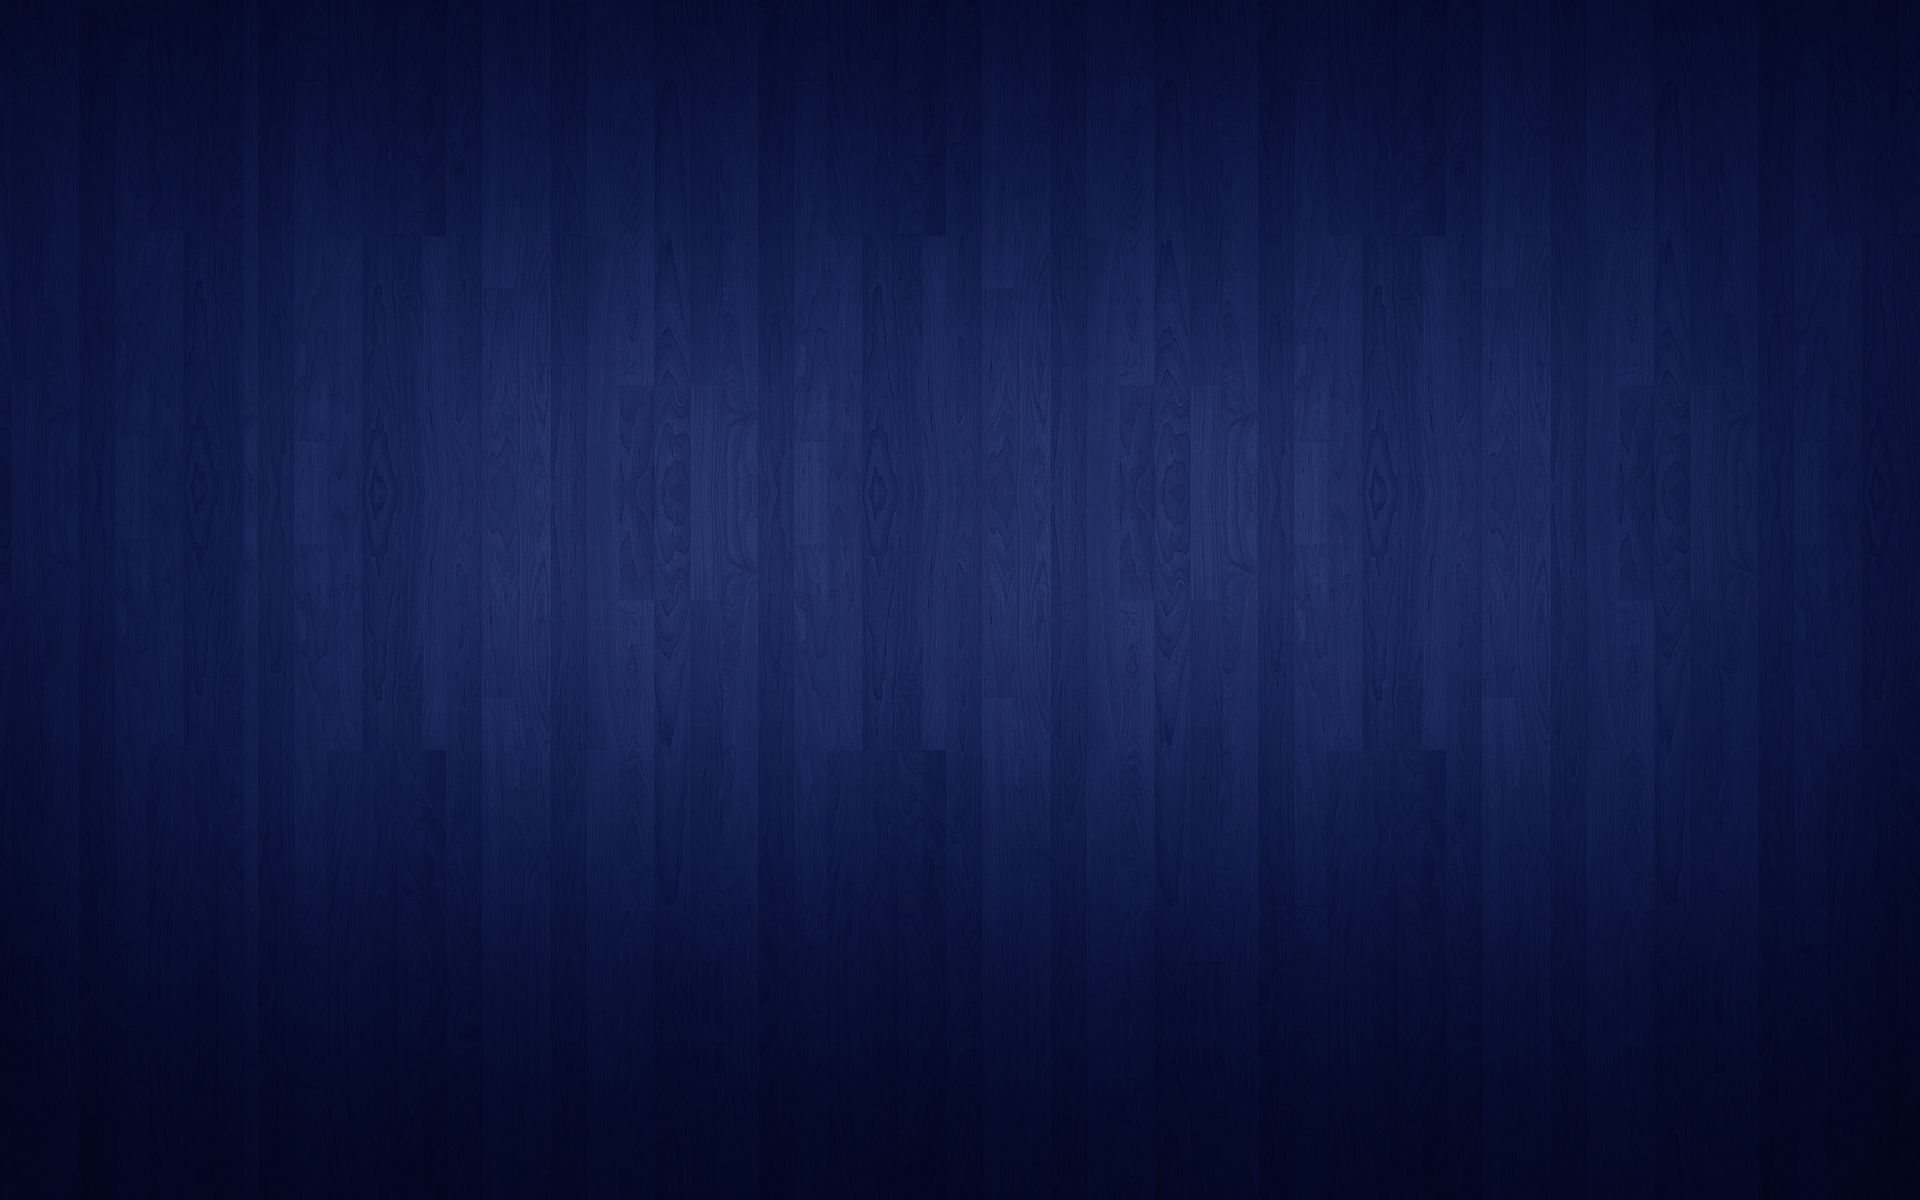 Best background images navy blue Blue background